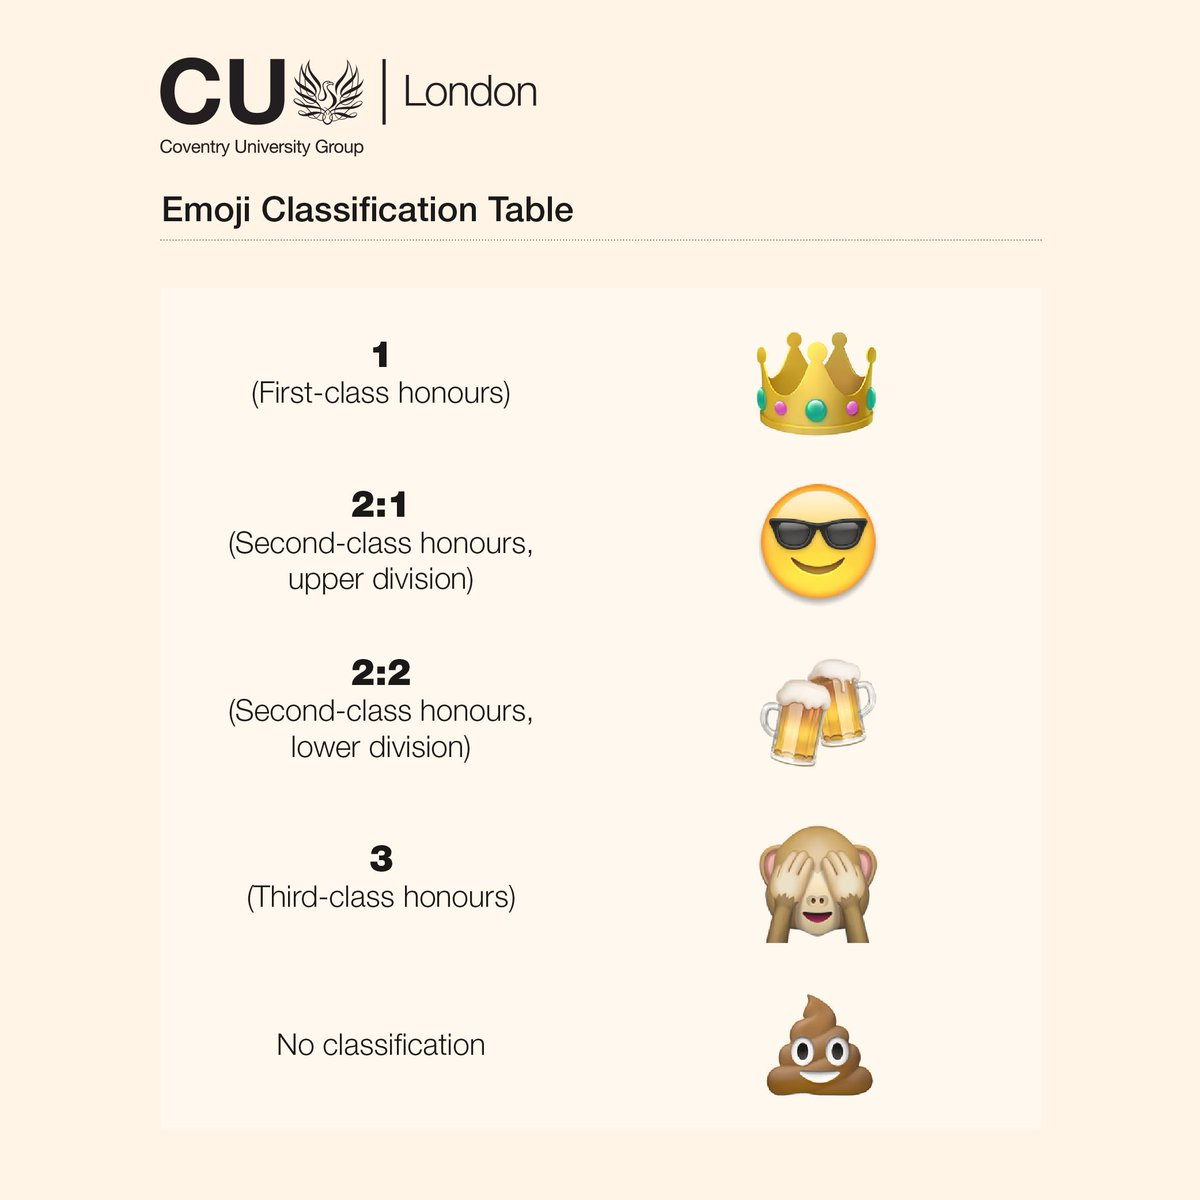 cu london londoncu twitter 0 replies 1 retweet 2 likes